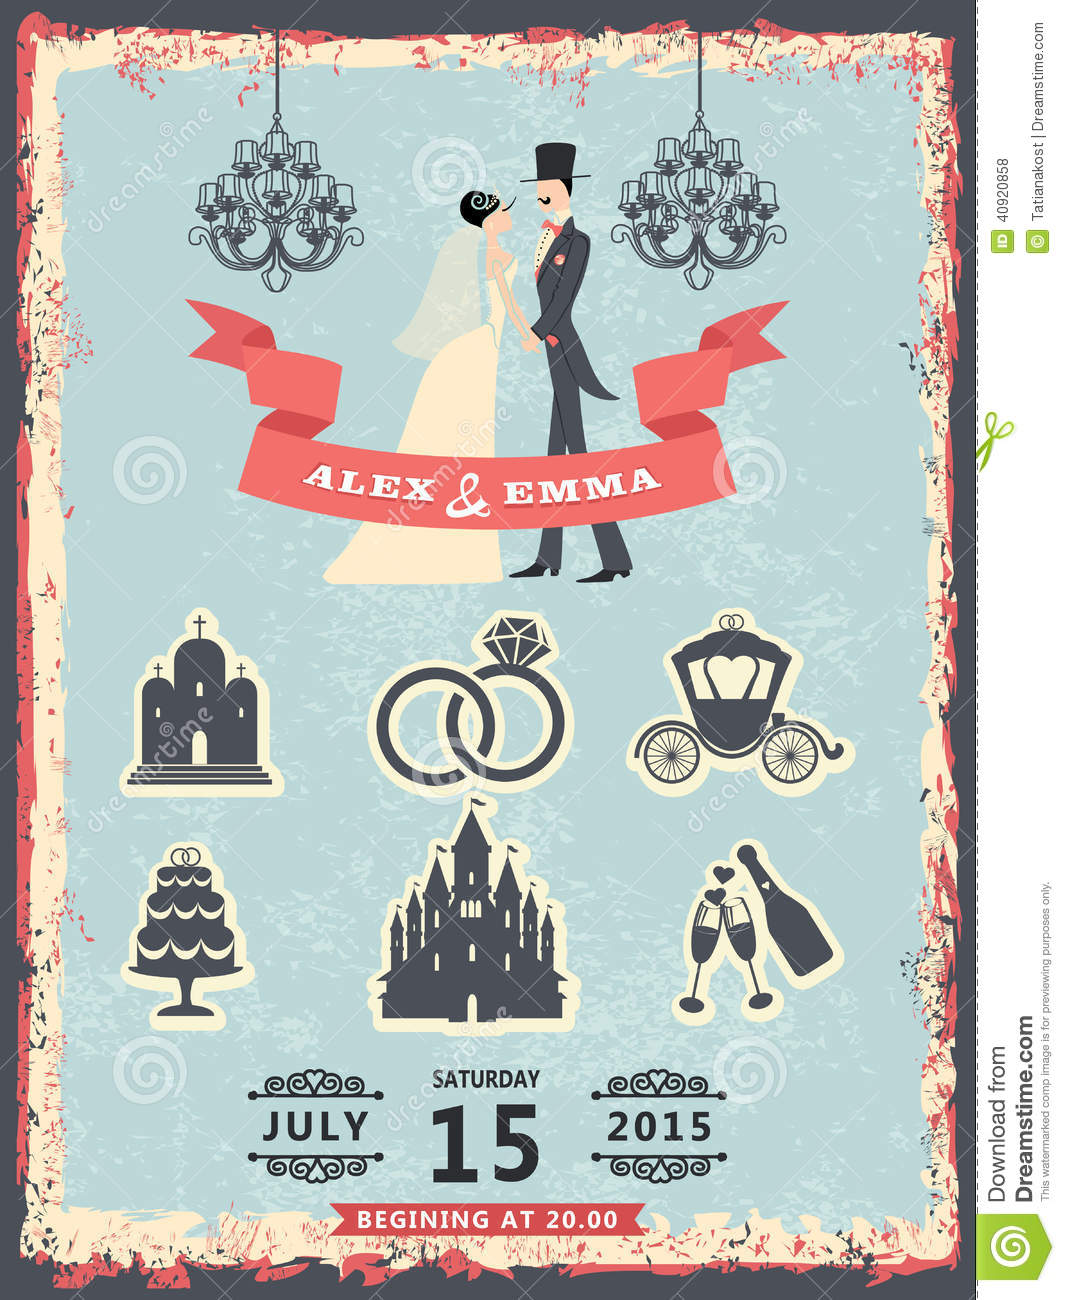 Invitation Card For Wedding App Vintage Invitation With Groom, Bride And Wedding Icons